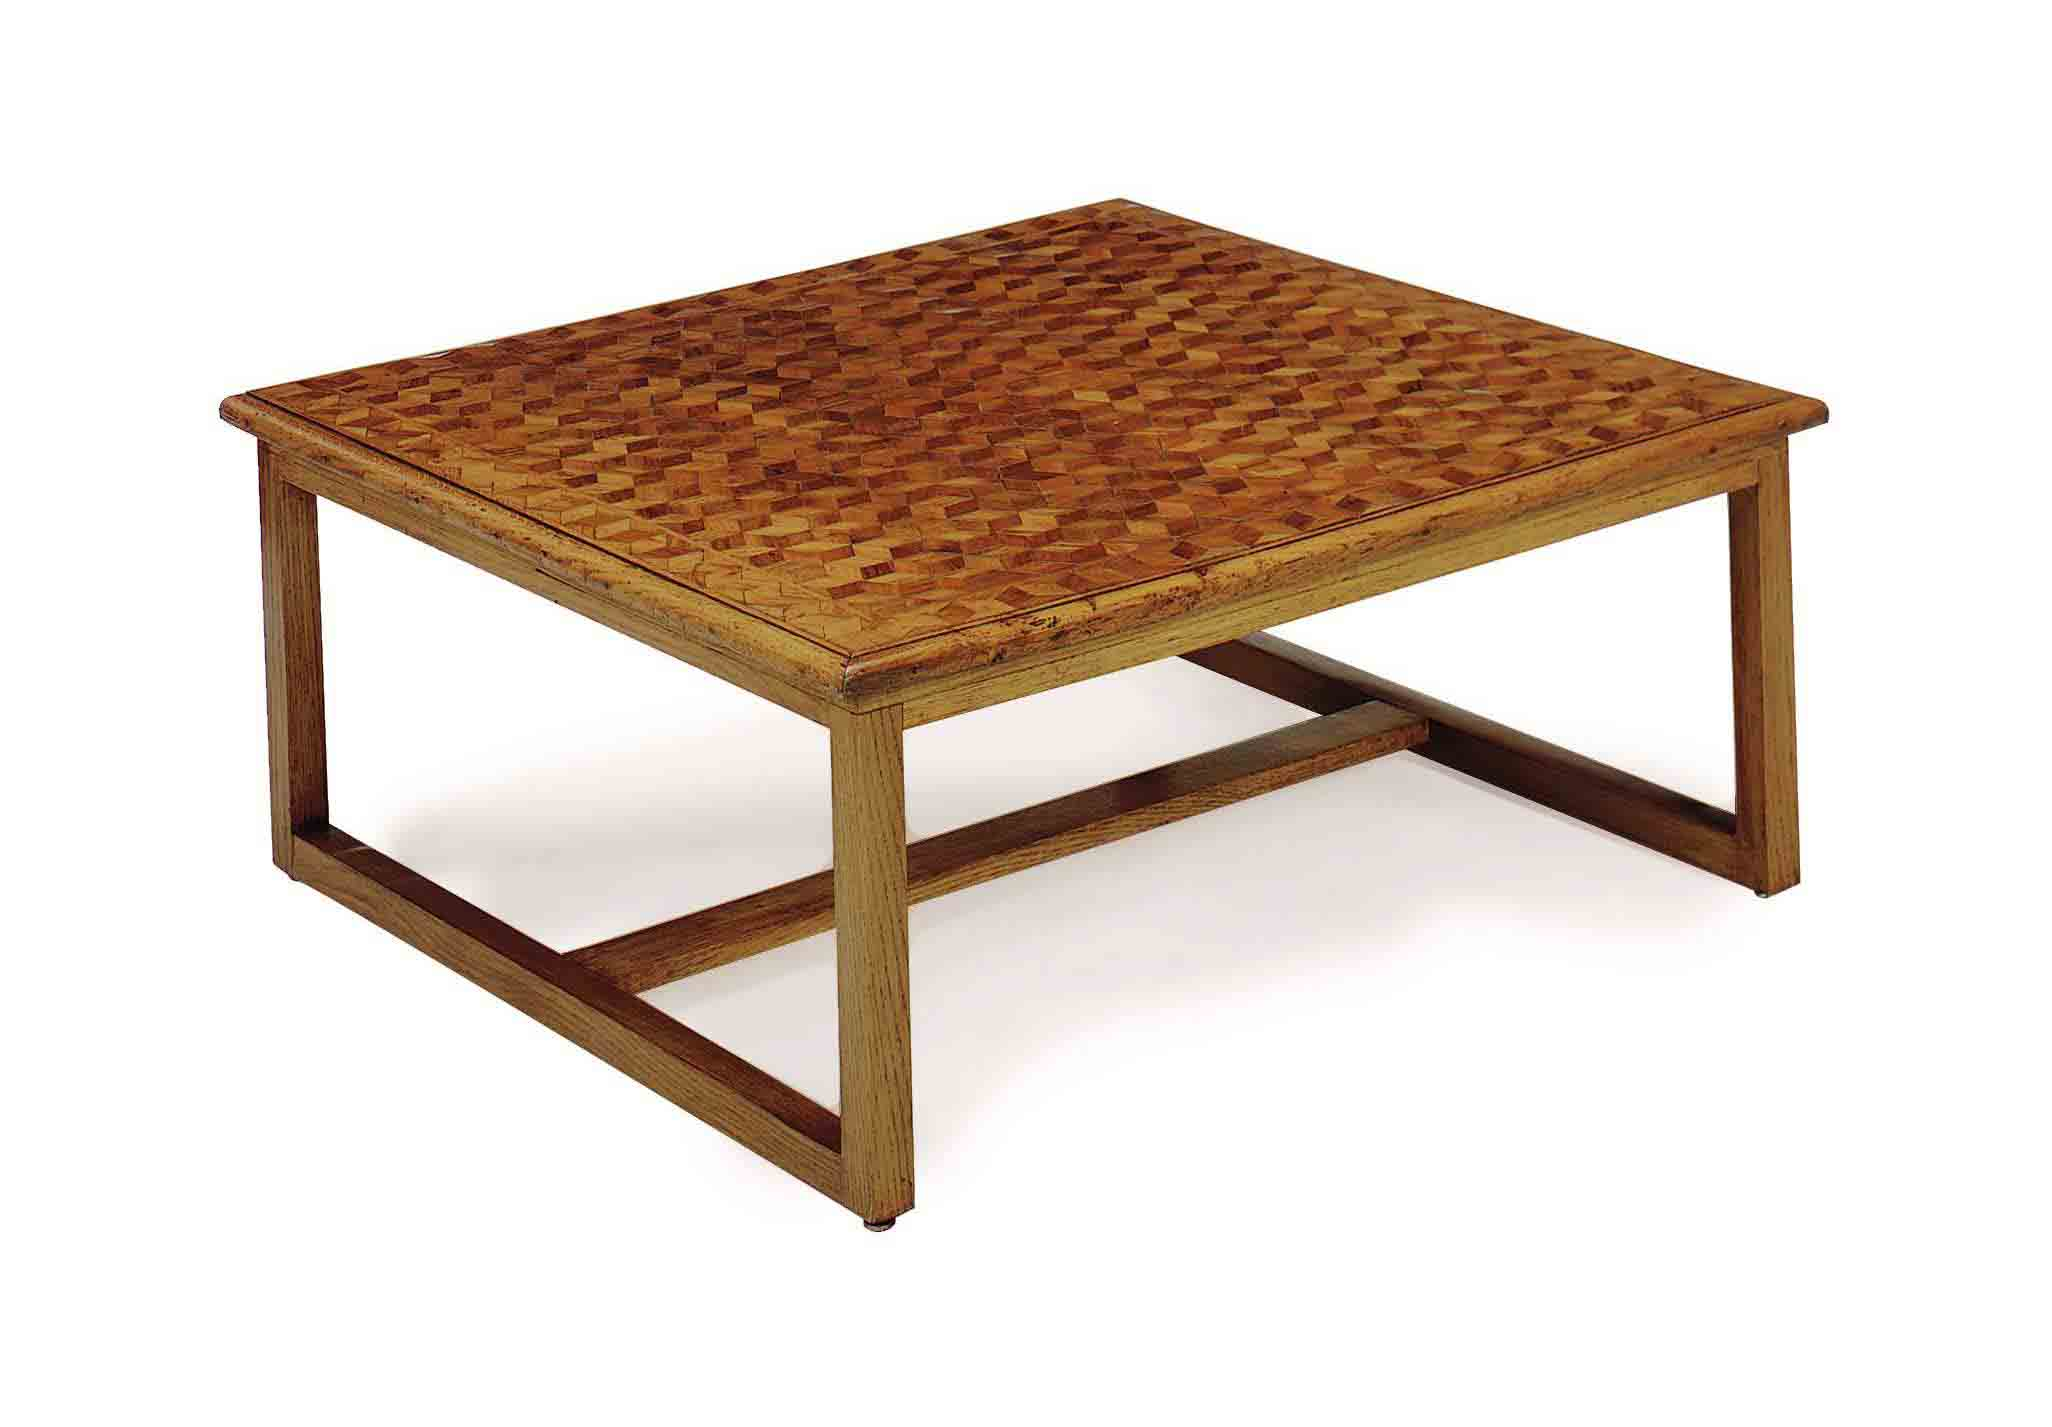 AN OAK AND MAHOGANY PARQUETRY